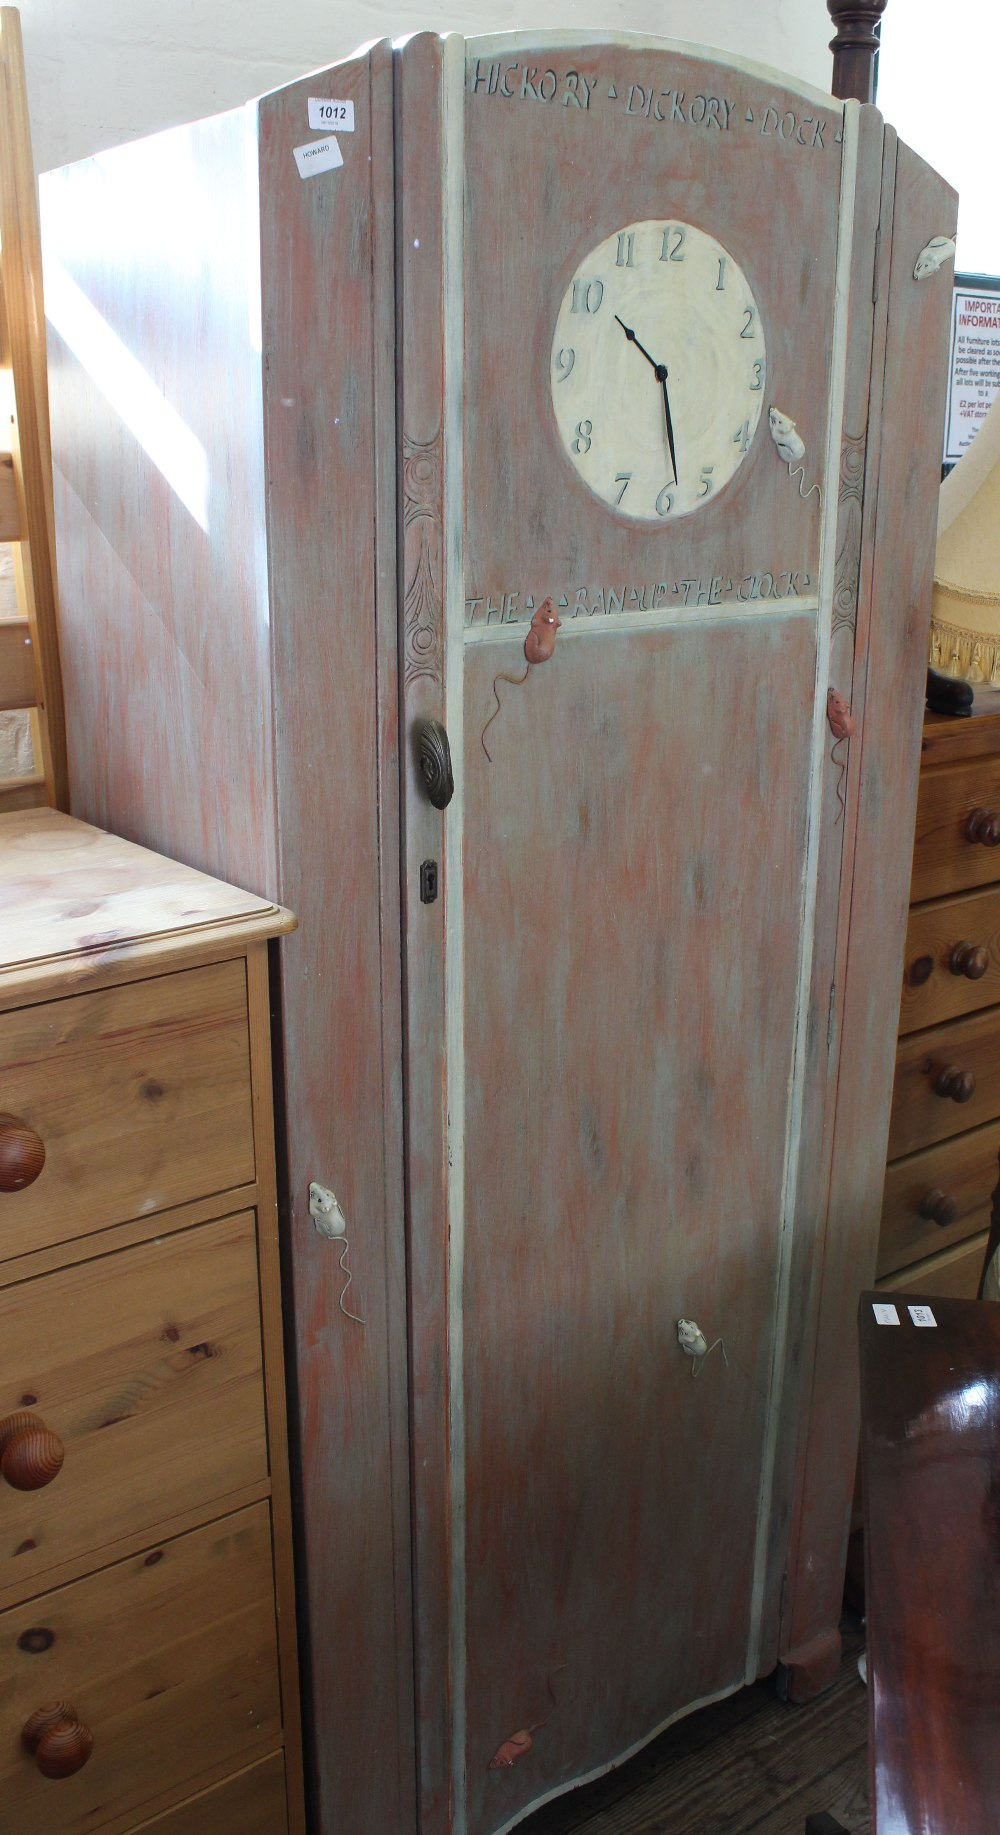 Lot 1012 - A child's wardrobe painted in nursery rhyme Hickory Dickory Dock theme